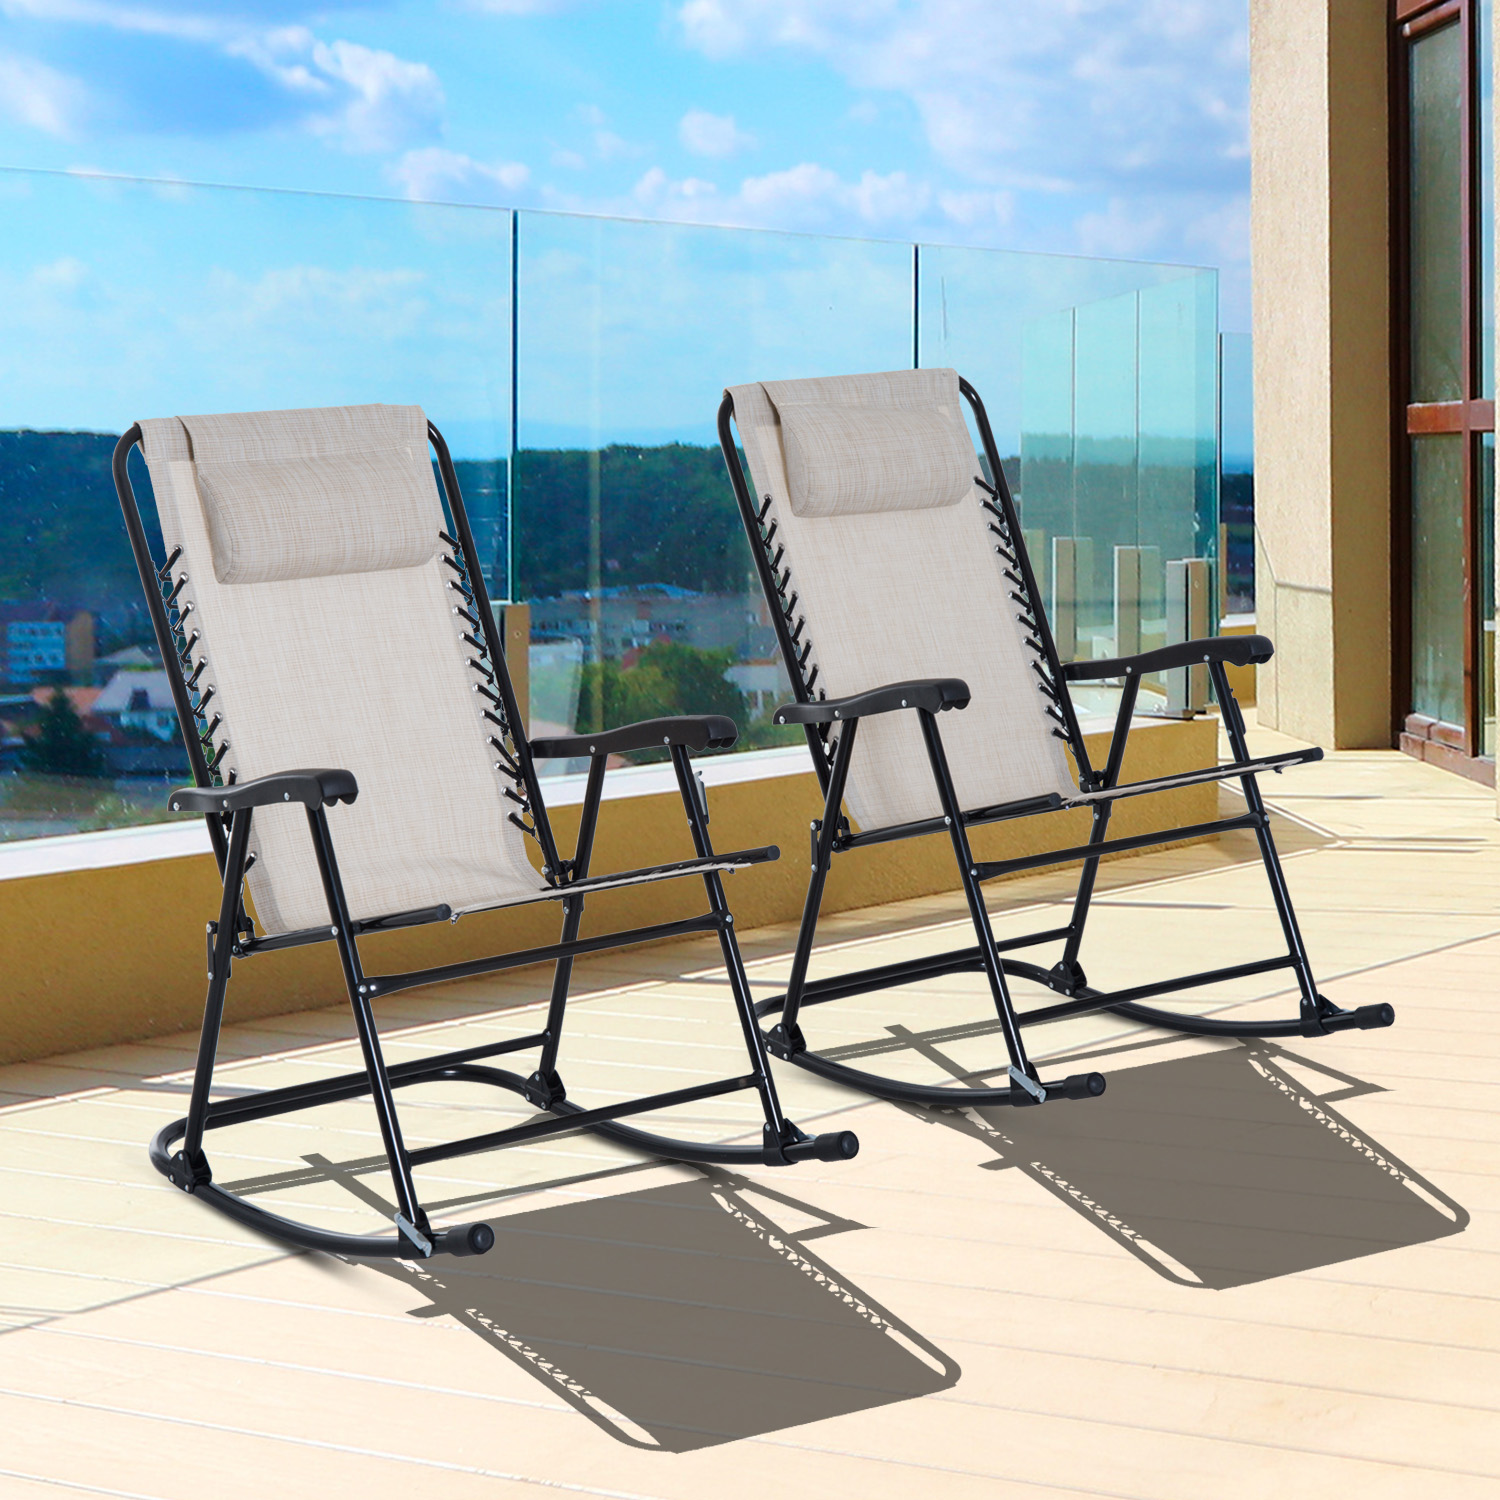 westfield outdoor zero gravity chair shower on wheels for disabled mesh rocking chairs 2pc patio folding